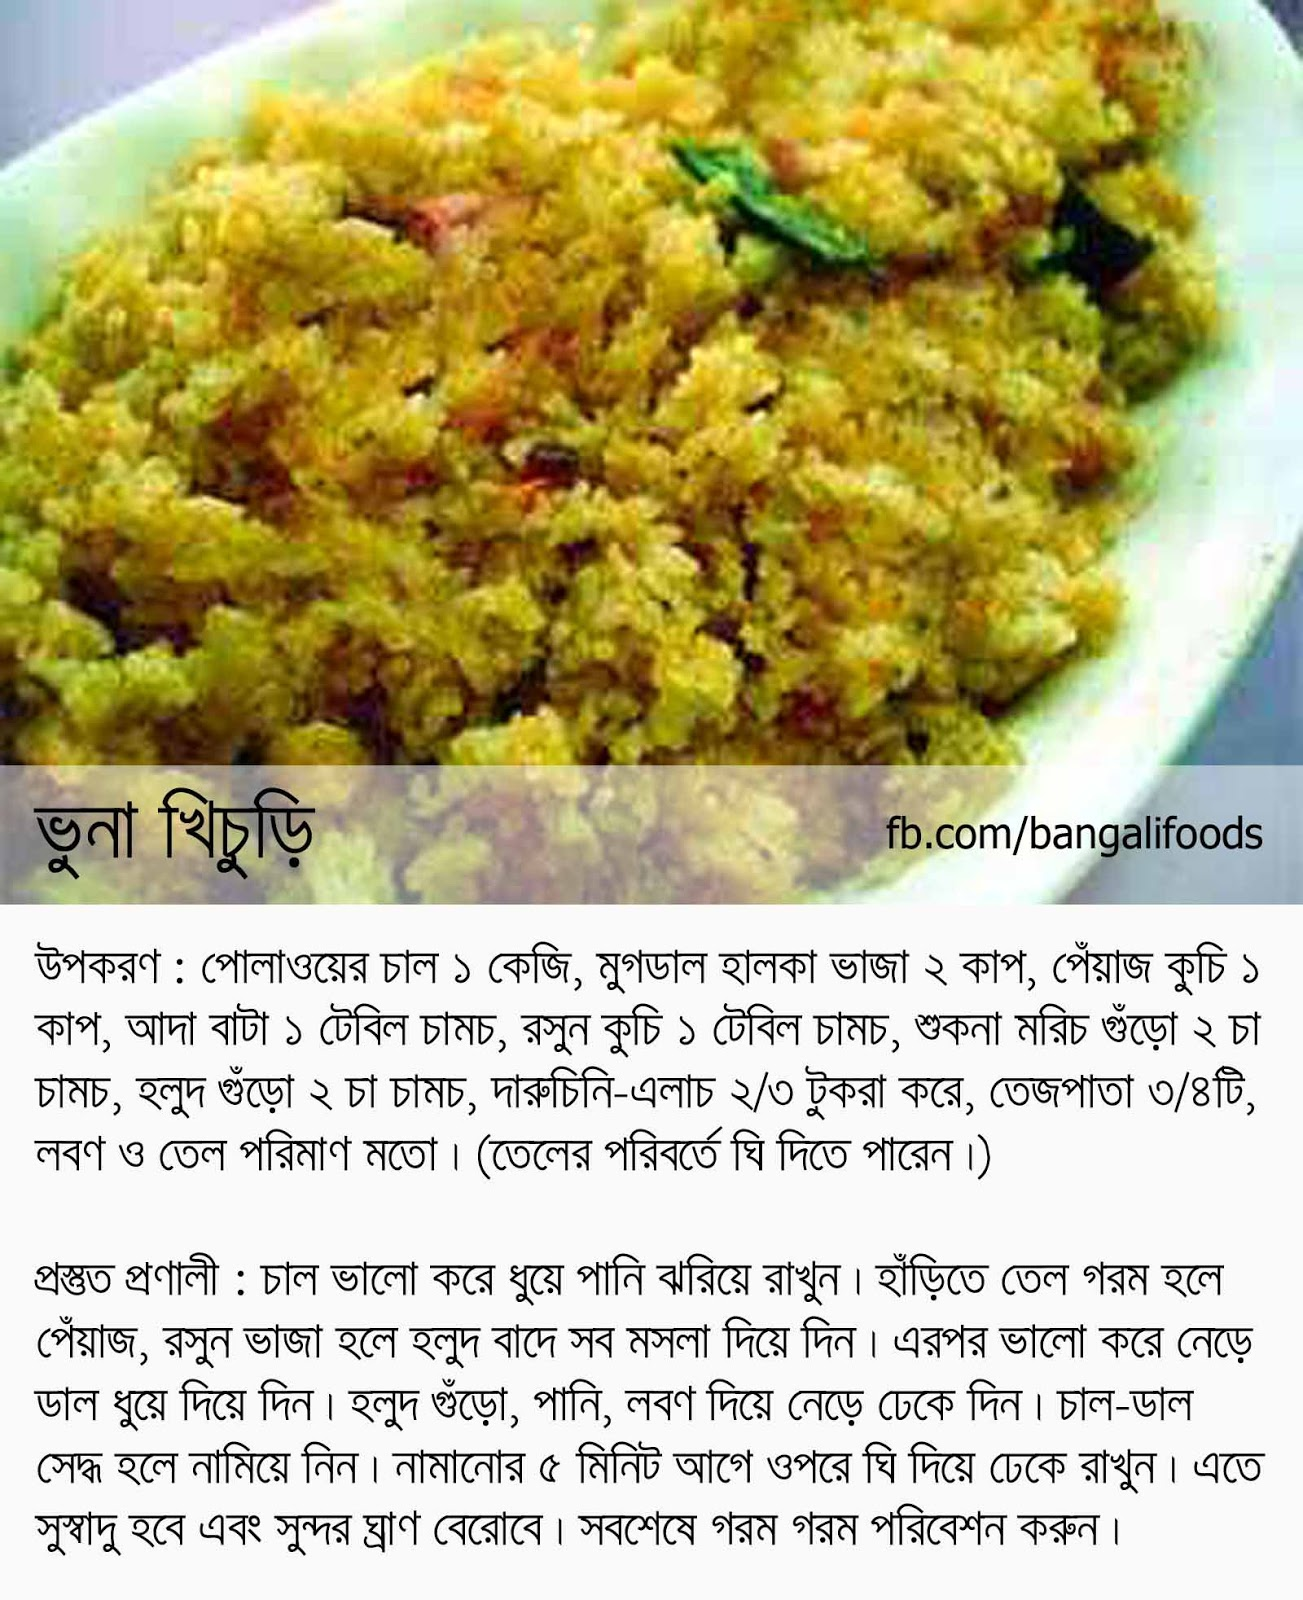 Bangali foods some khichuri recipes in bangla bangali foods forumfinder Images